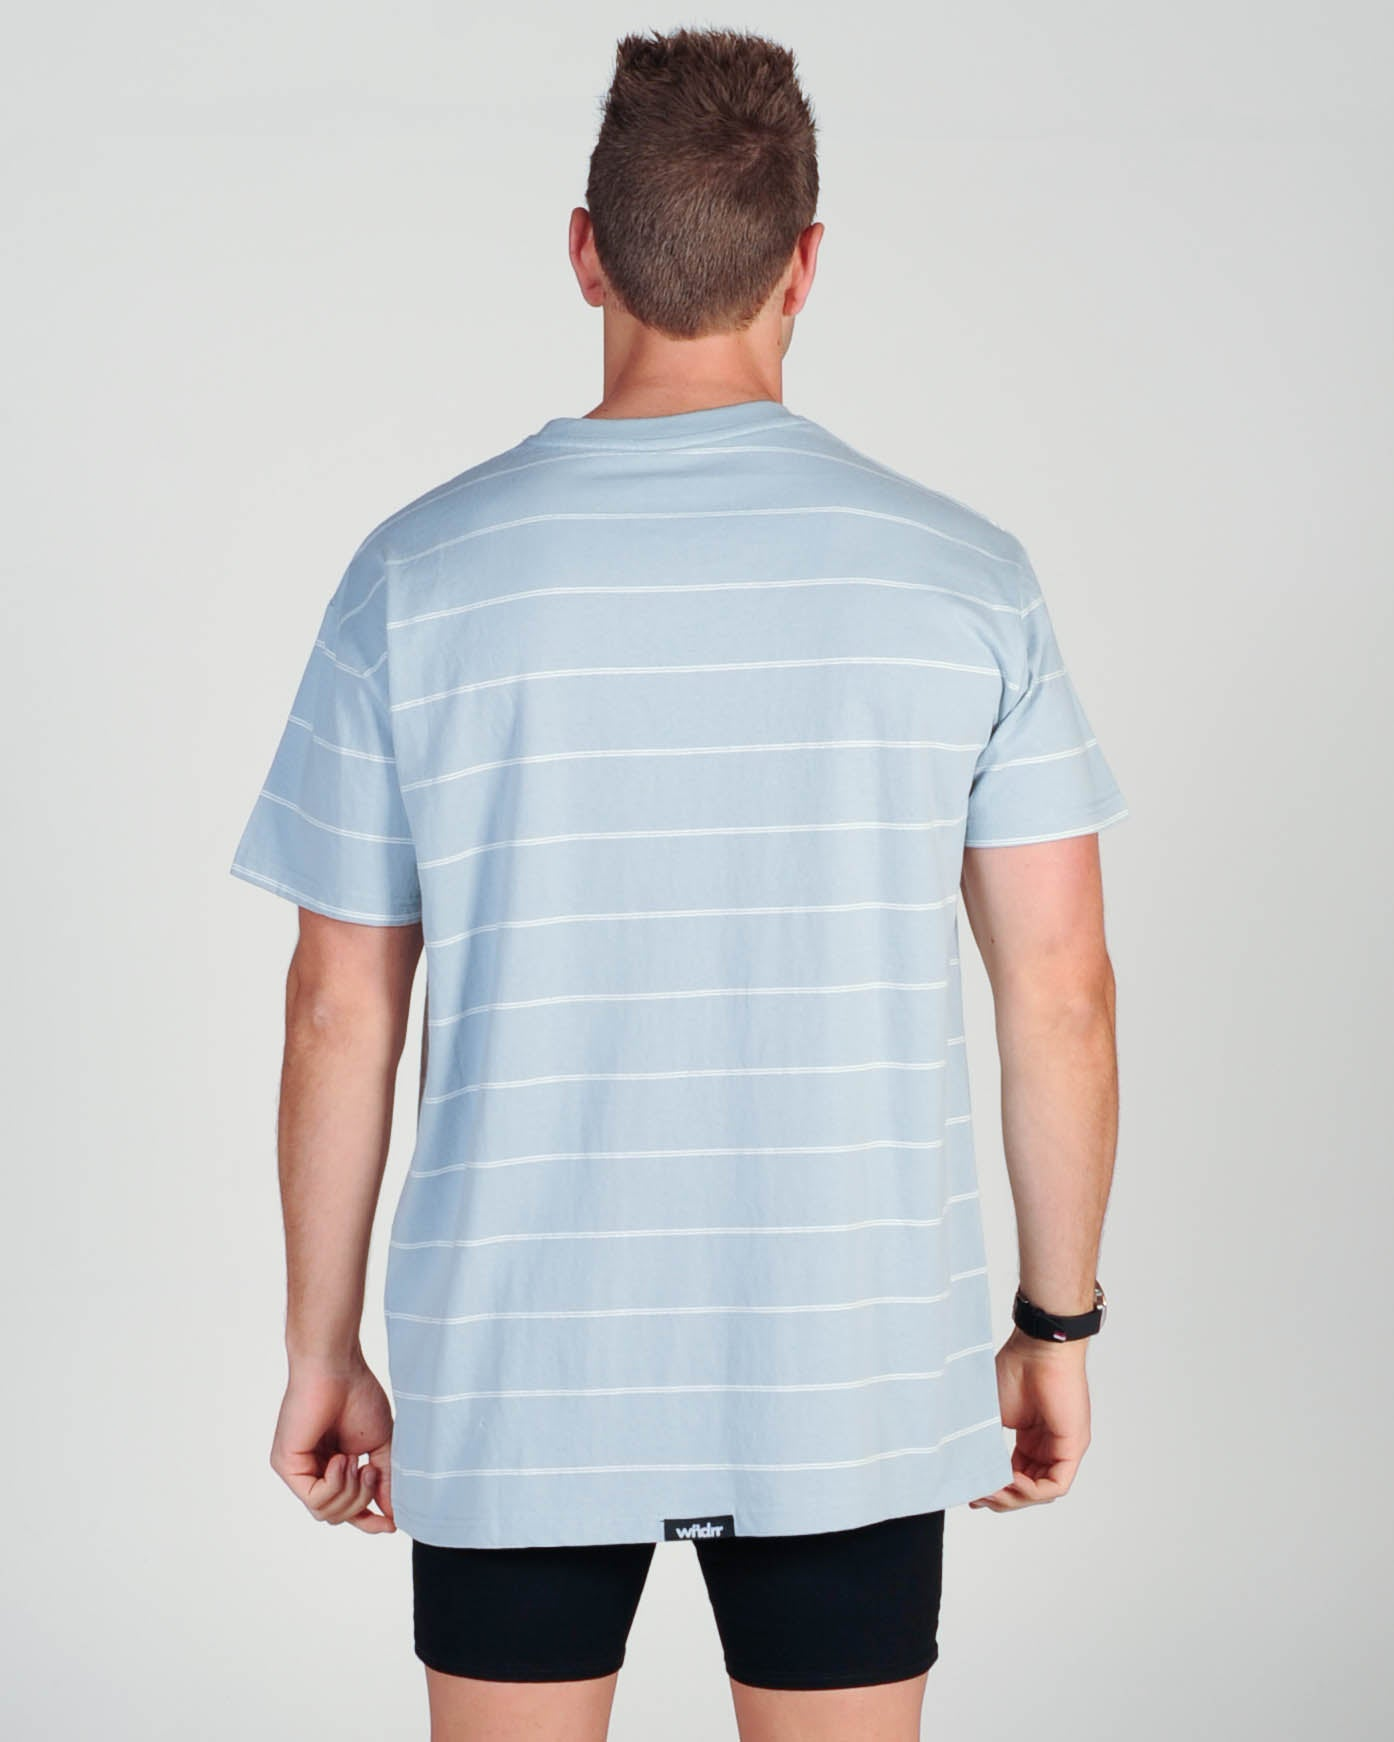 Wndrr Limitless Stripe Custom Fit Tee - Chalk Blue/White